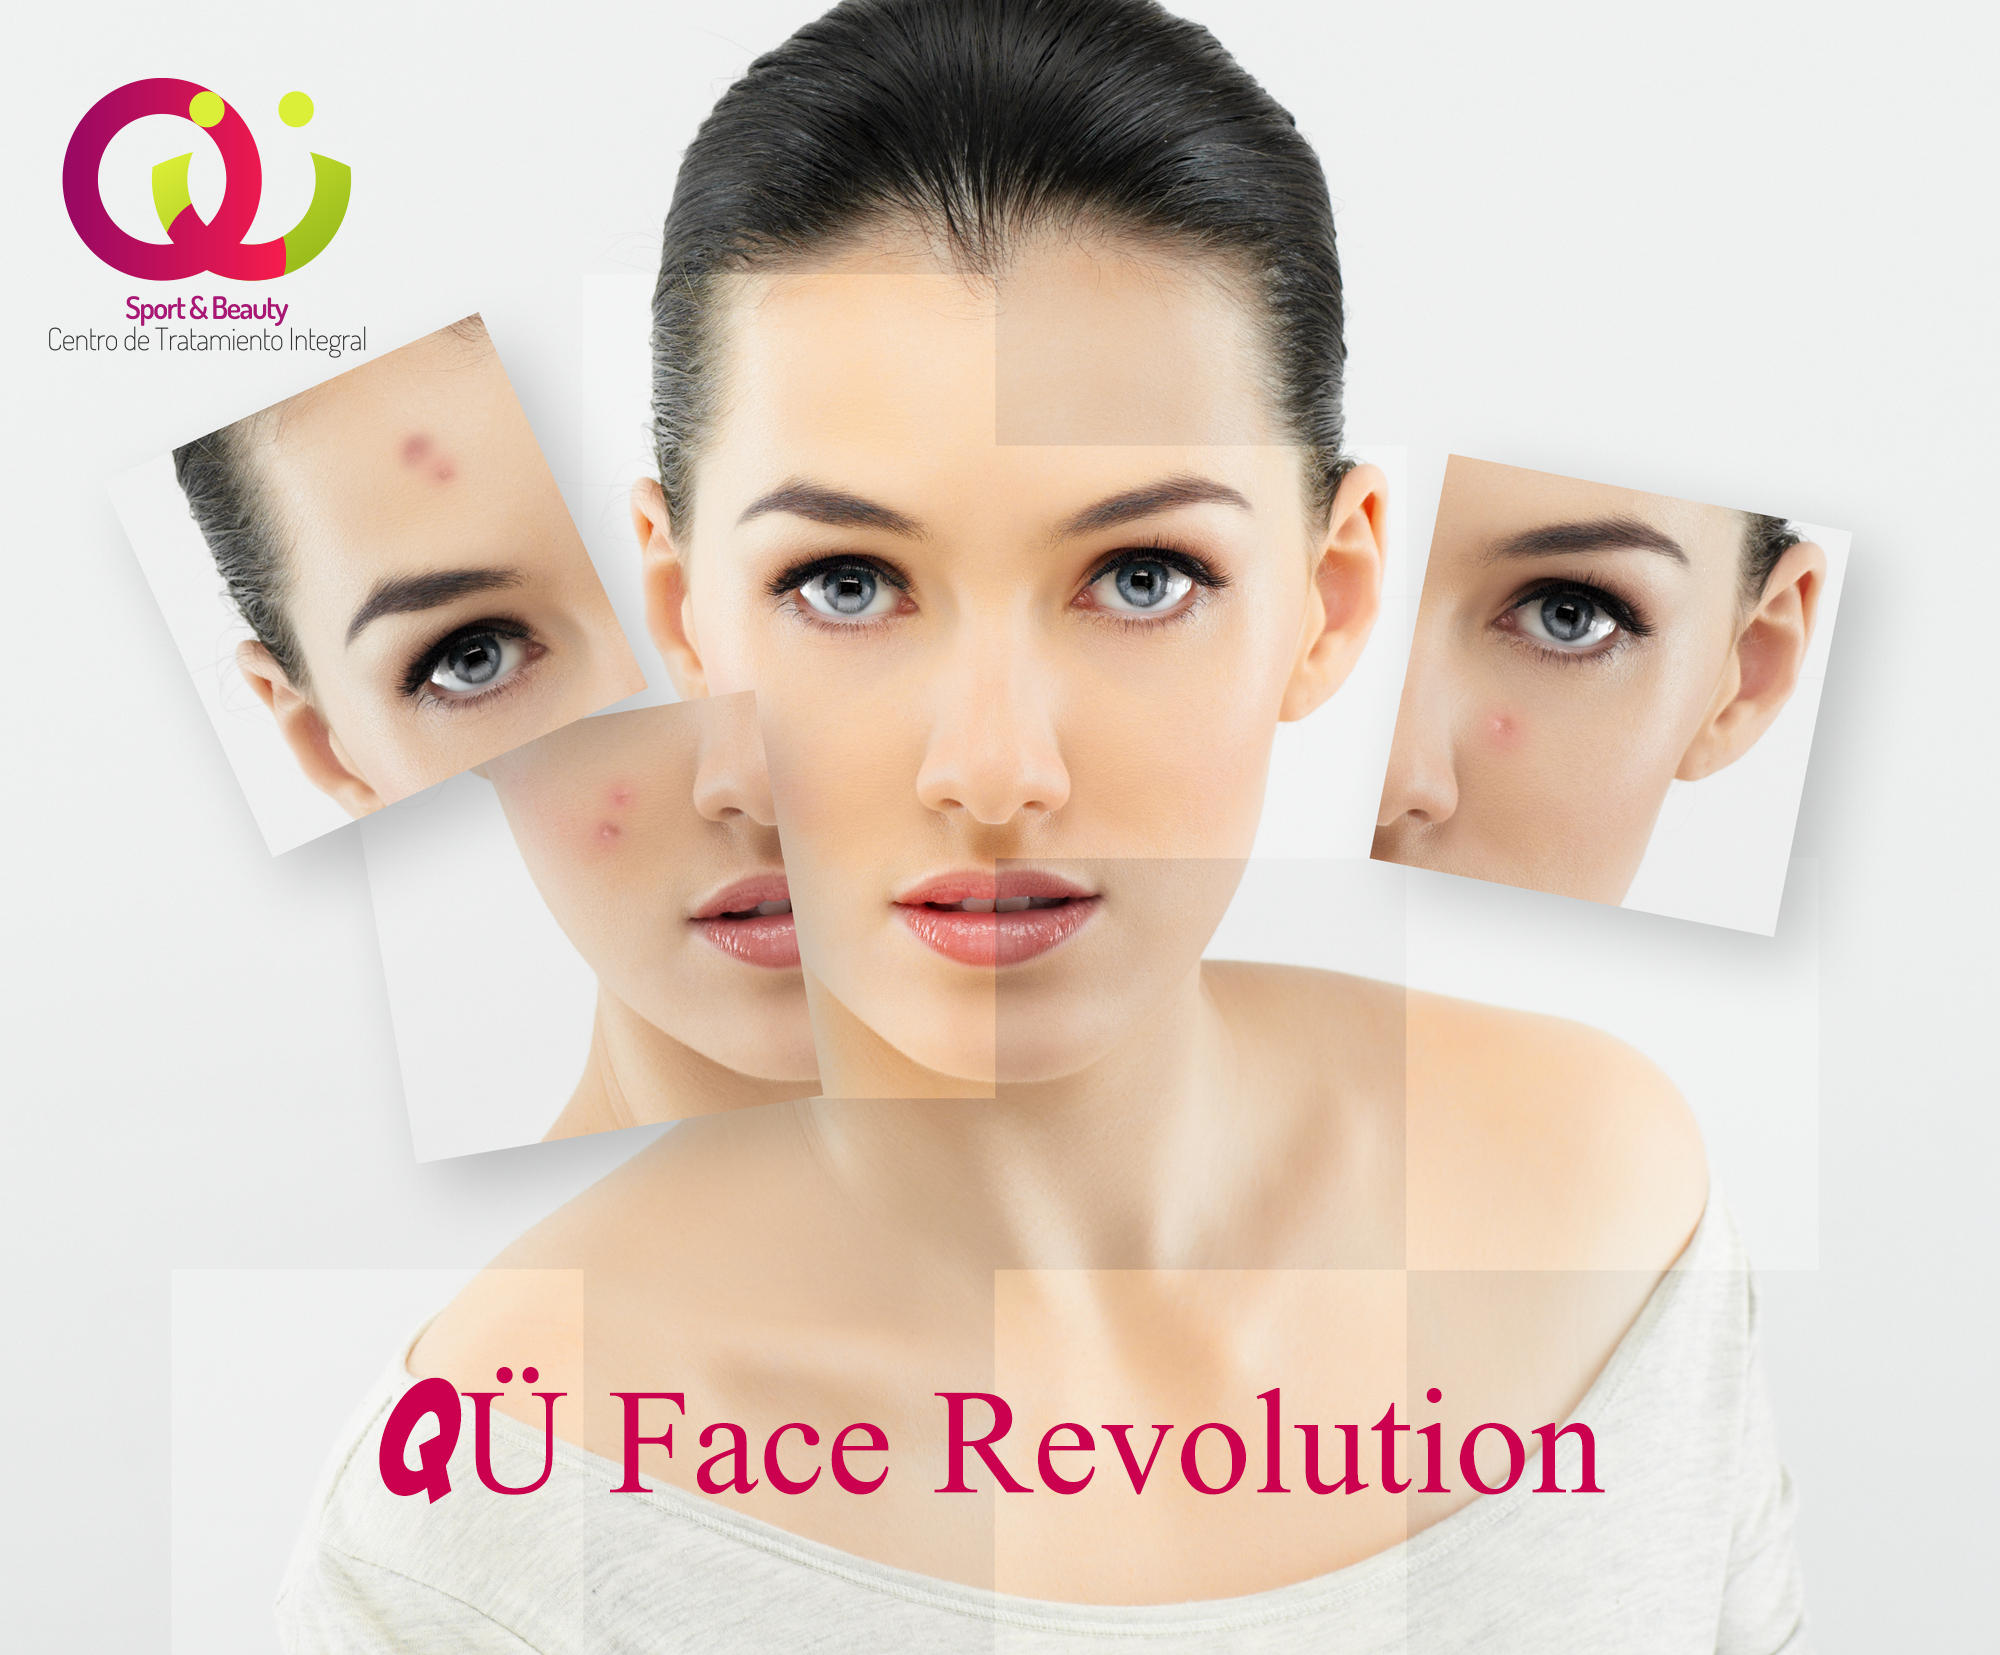 tratamiento facial QÜ Face Revolution